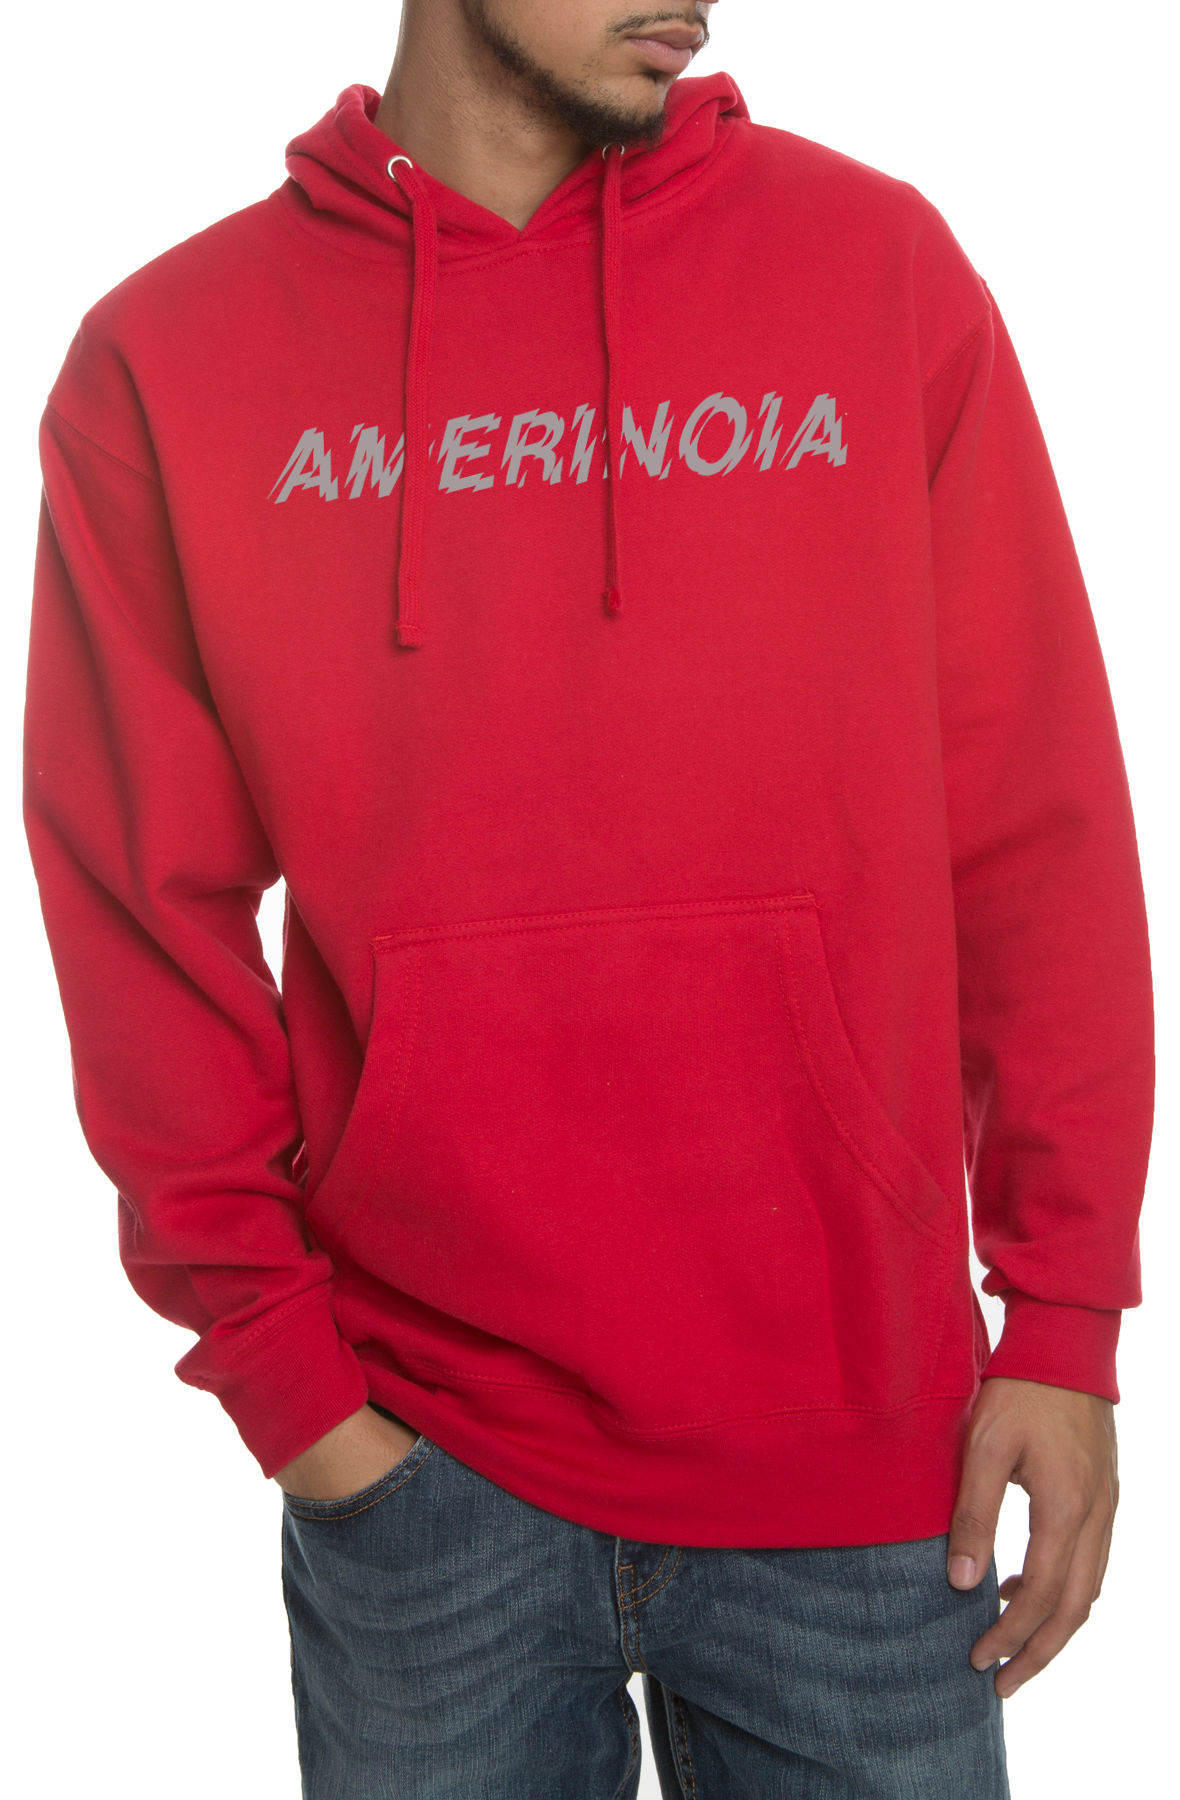 Image of The Amerinoia Hoodie in Red